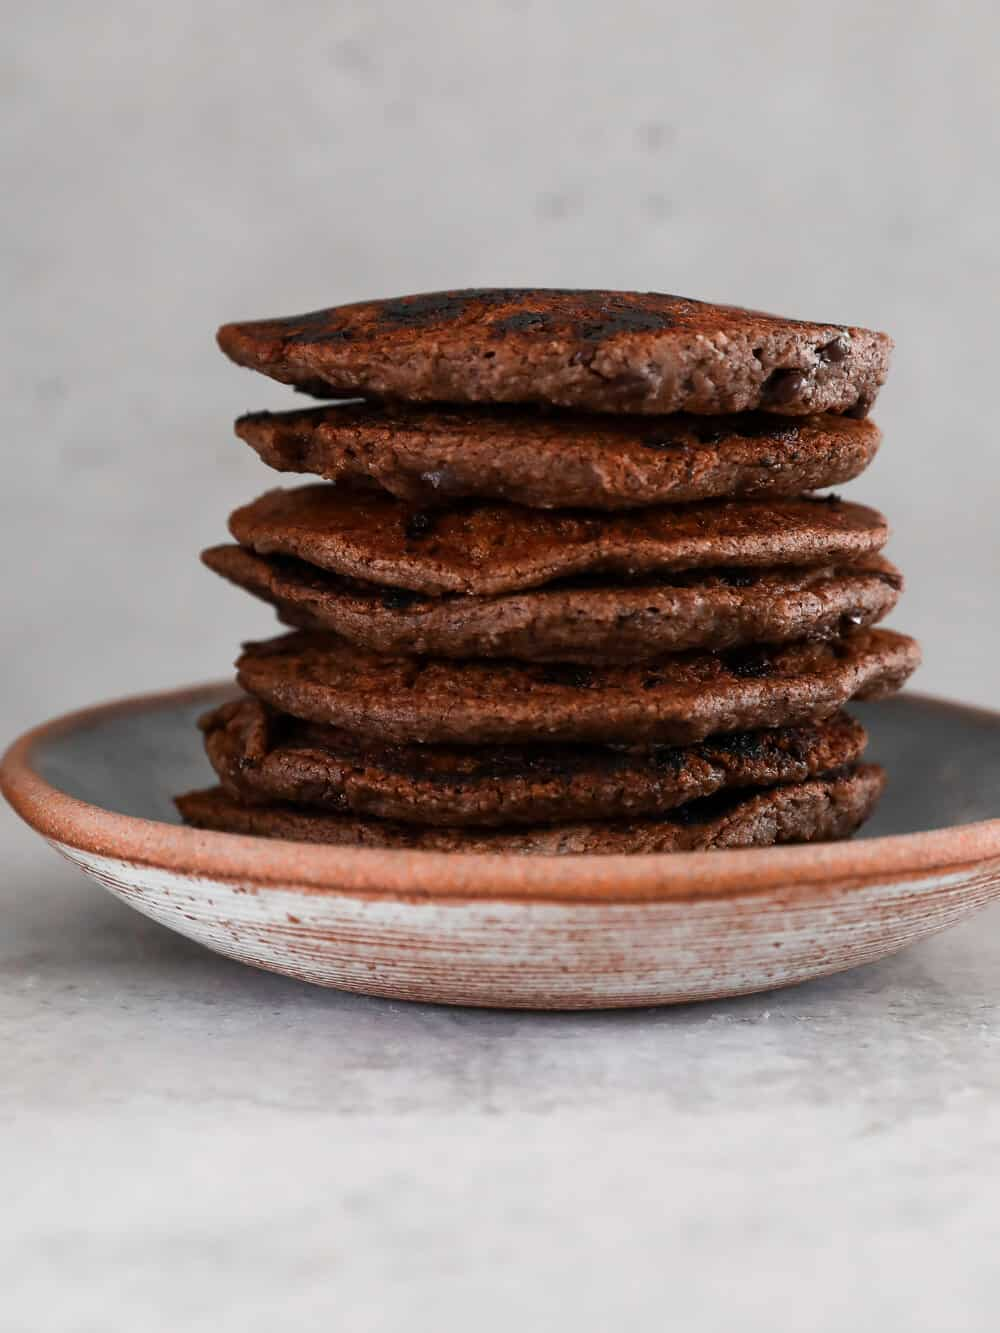 FLUFFY BANANA CHOCOLATE CHIP PANCAKES - INGREDIENTS3/4 cup oat flour2 tablespoons cacao or cocoa powder2 teaspoons coconut oil3/4 cup almond milk1 ripe banana1 teaspoon baking powder1 teaspoon vanilla extract1/2 cup dairy free chocolate chips